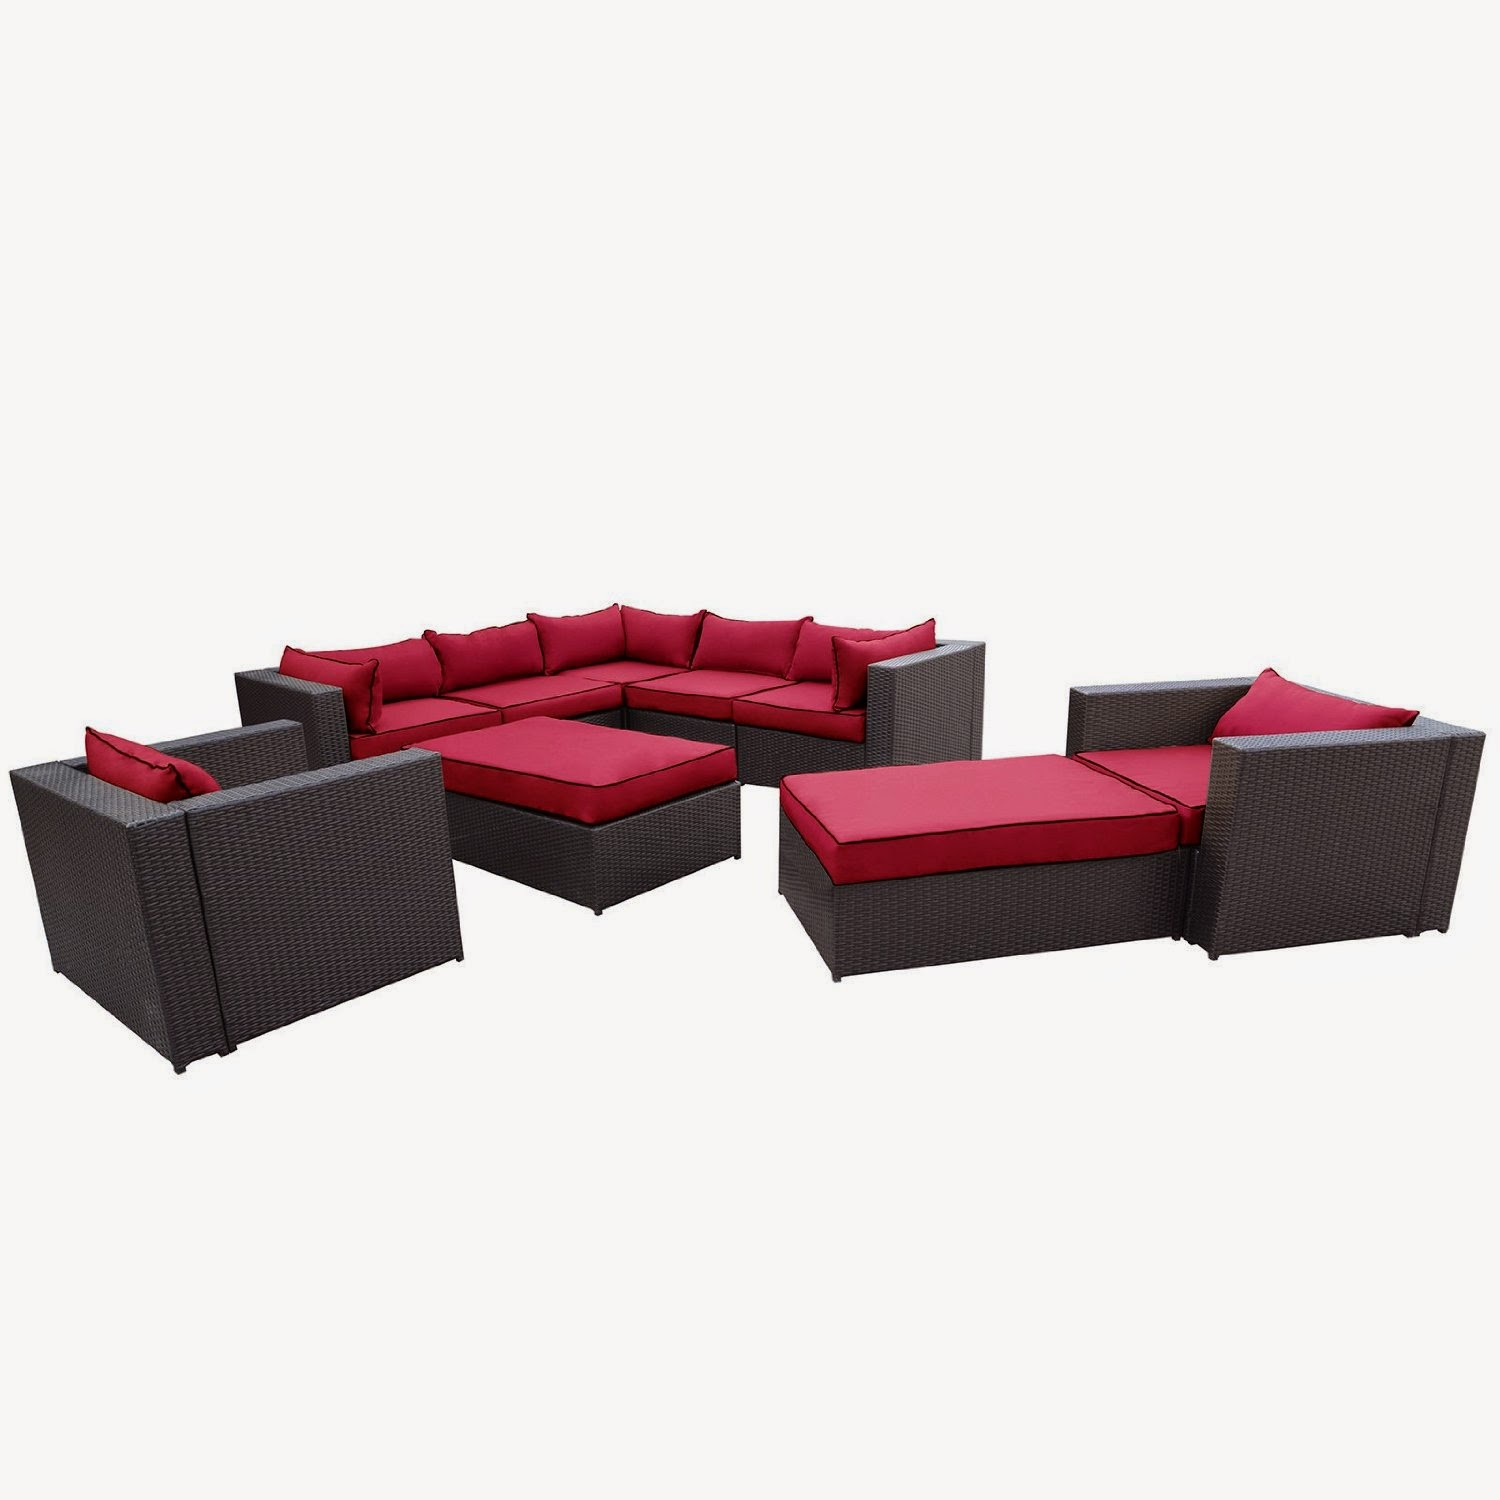 Outdoor Furniture Sofa Sectional Mexico Corner Bed Patio Rattan Wicker